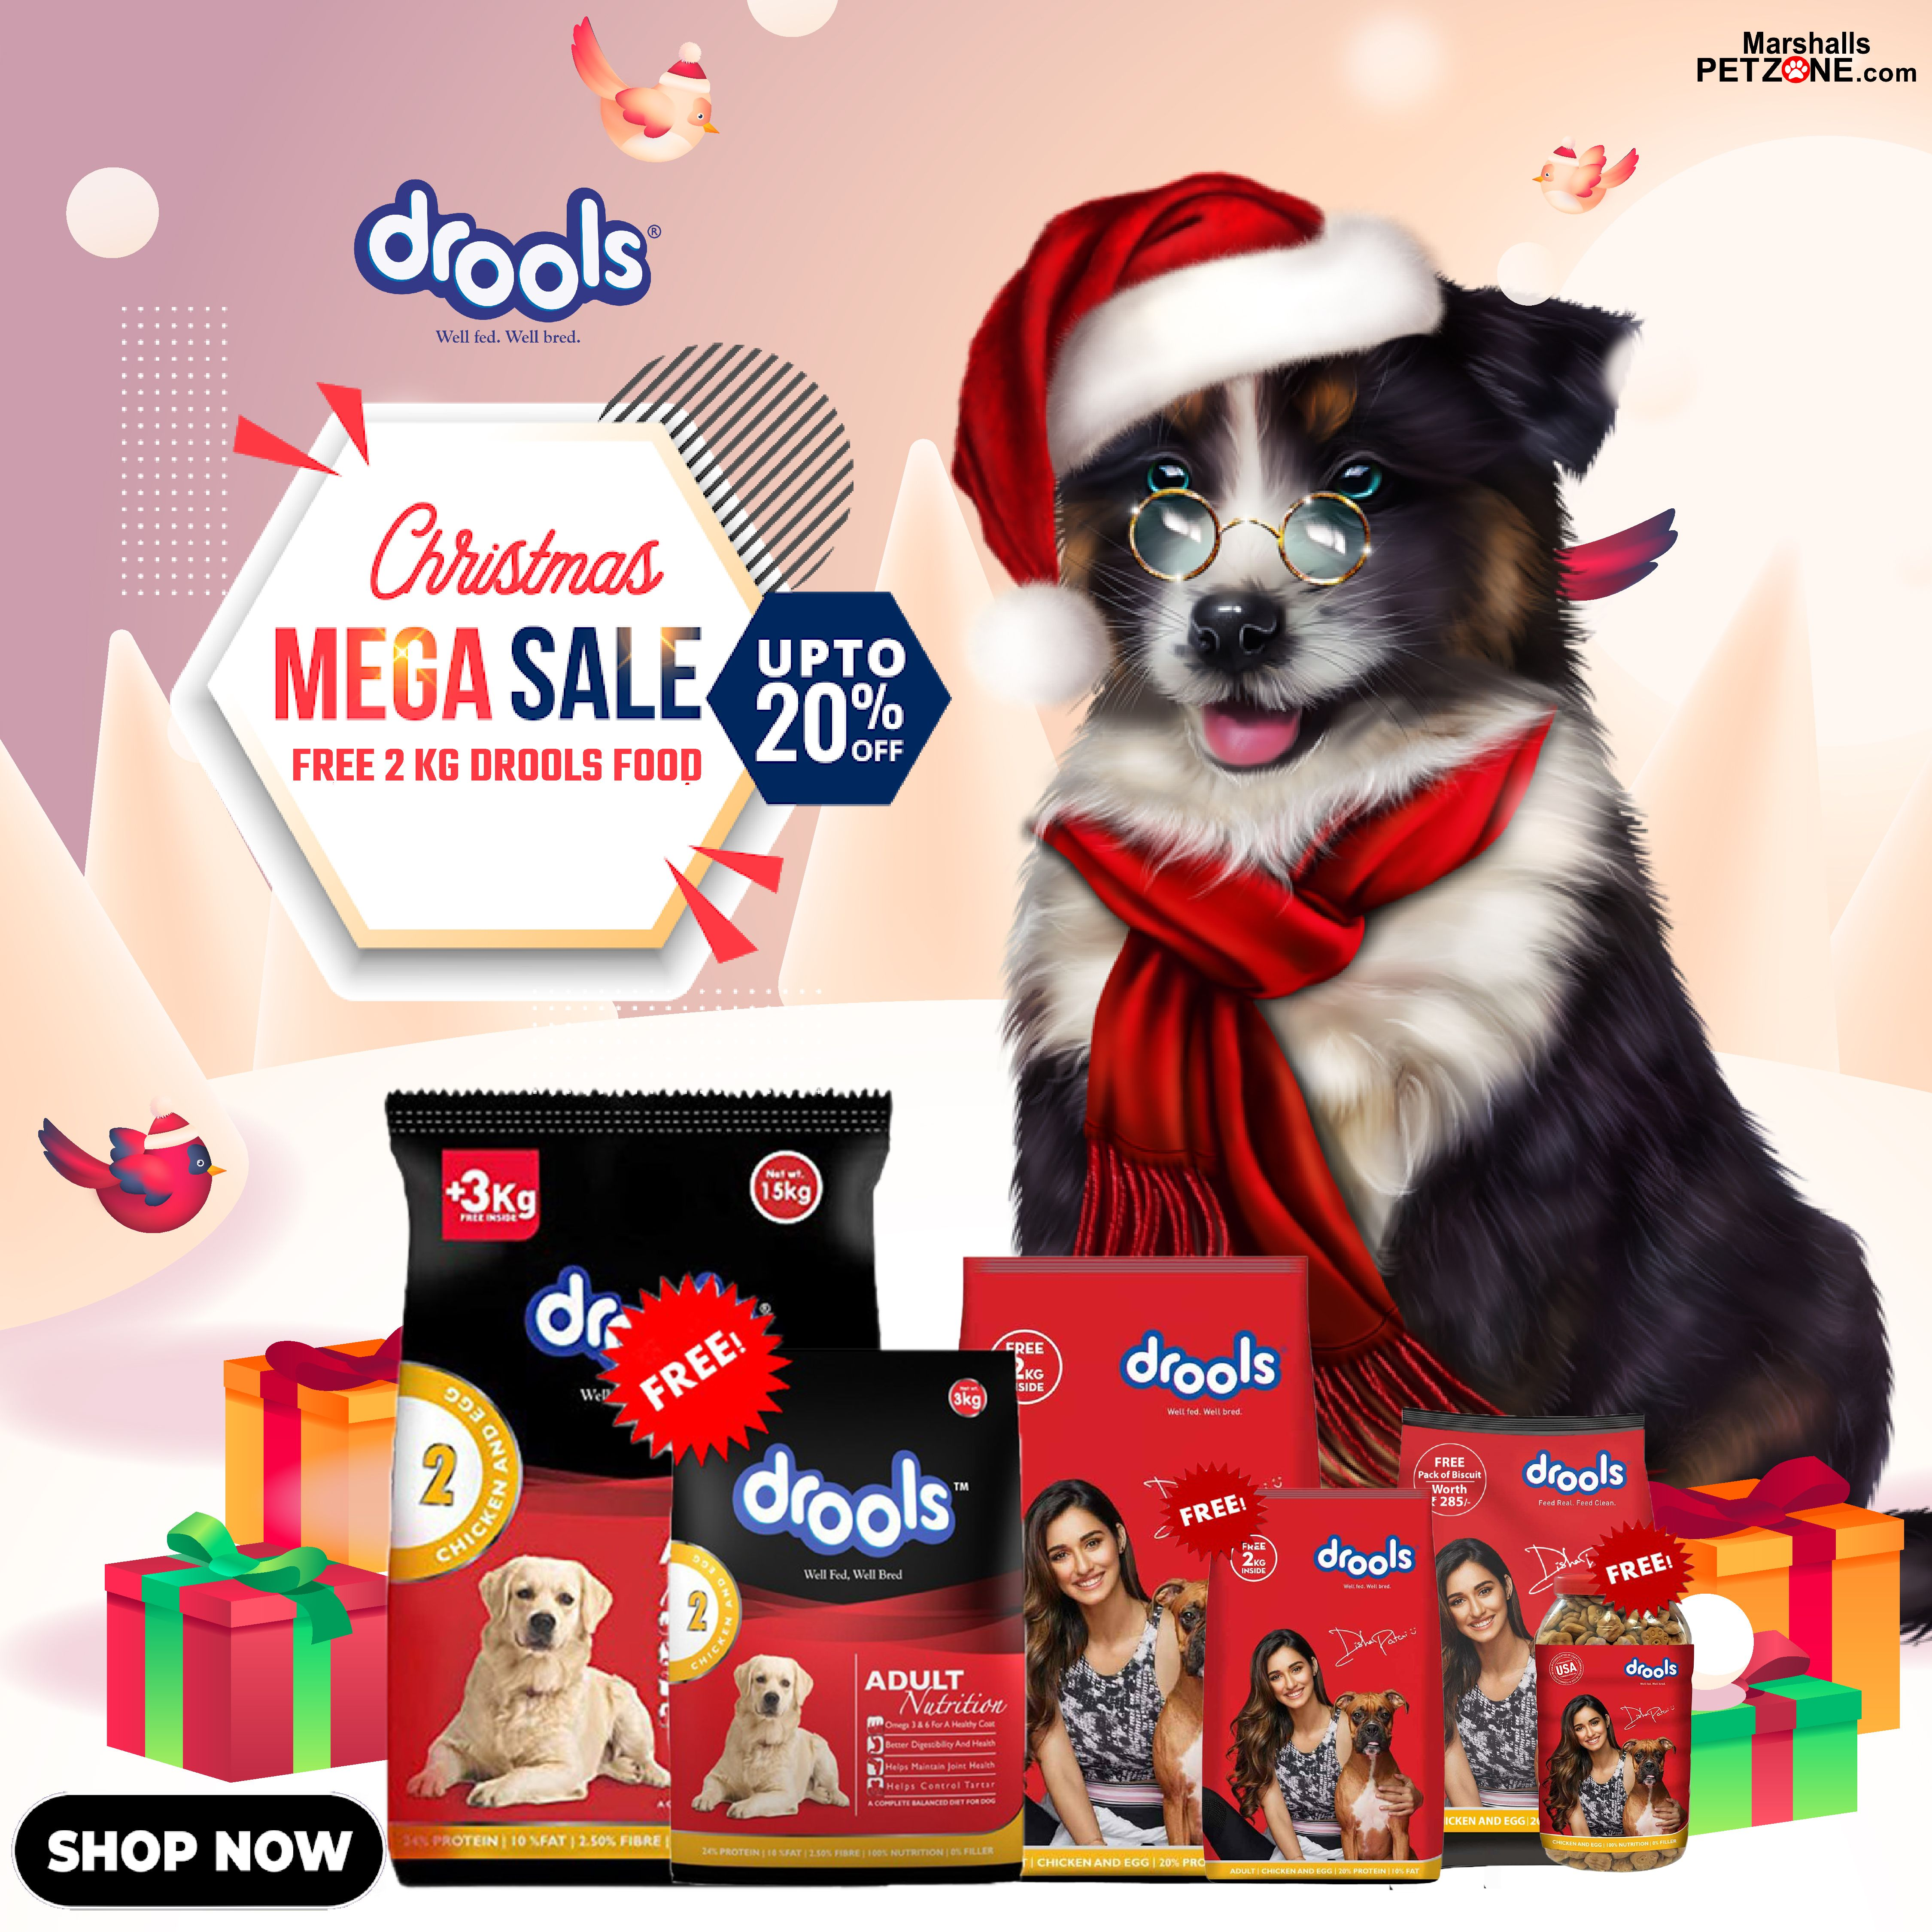 Ho Ho Christmas Sale Free 2 Kg With Drools Food In 2020 Best Dry Dog Food Dog Food Online Dog Food Recipes